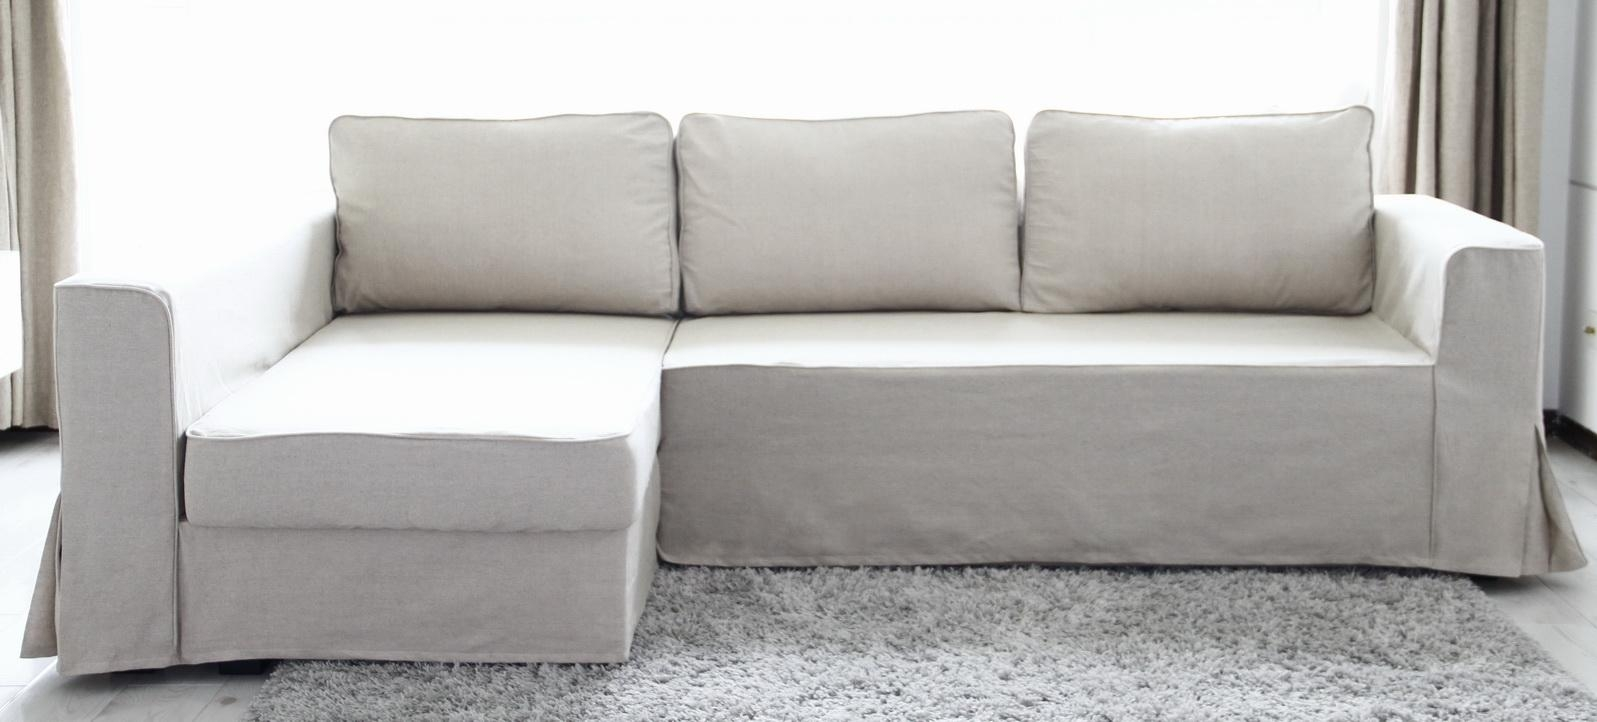 Cover Sofa Bed With Chaise Longue   Centerfieldbar Within Sofas With Chaise Longue (Image 4 of 20)